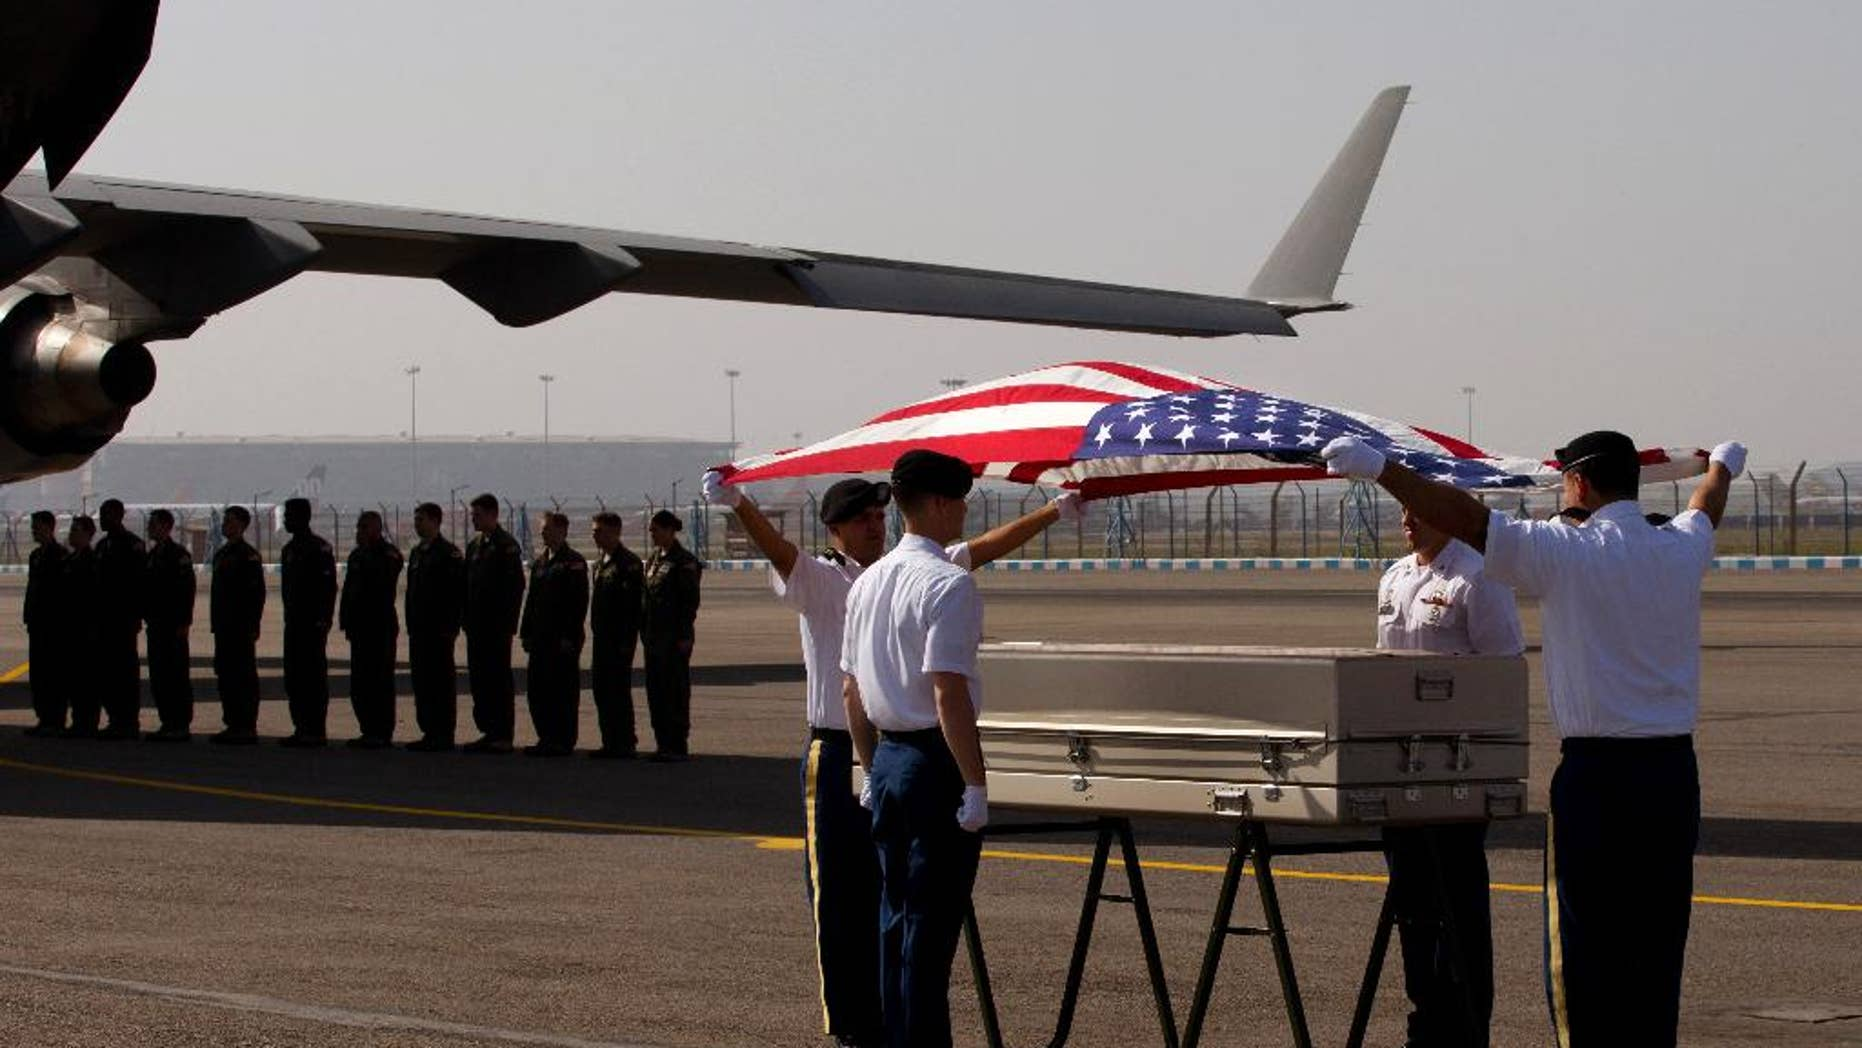 APRIL 13: U.S. military members pay final respects to what they believe may be the remains of one to two crew members from a B-24 bomber that crashed during World War II at a ceremony at the Palam airport.